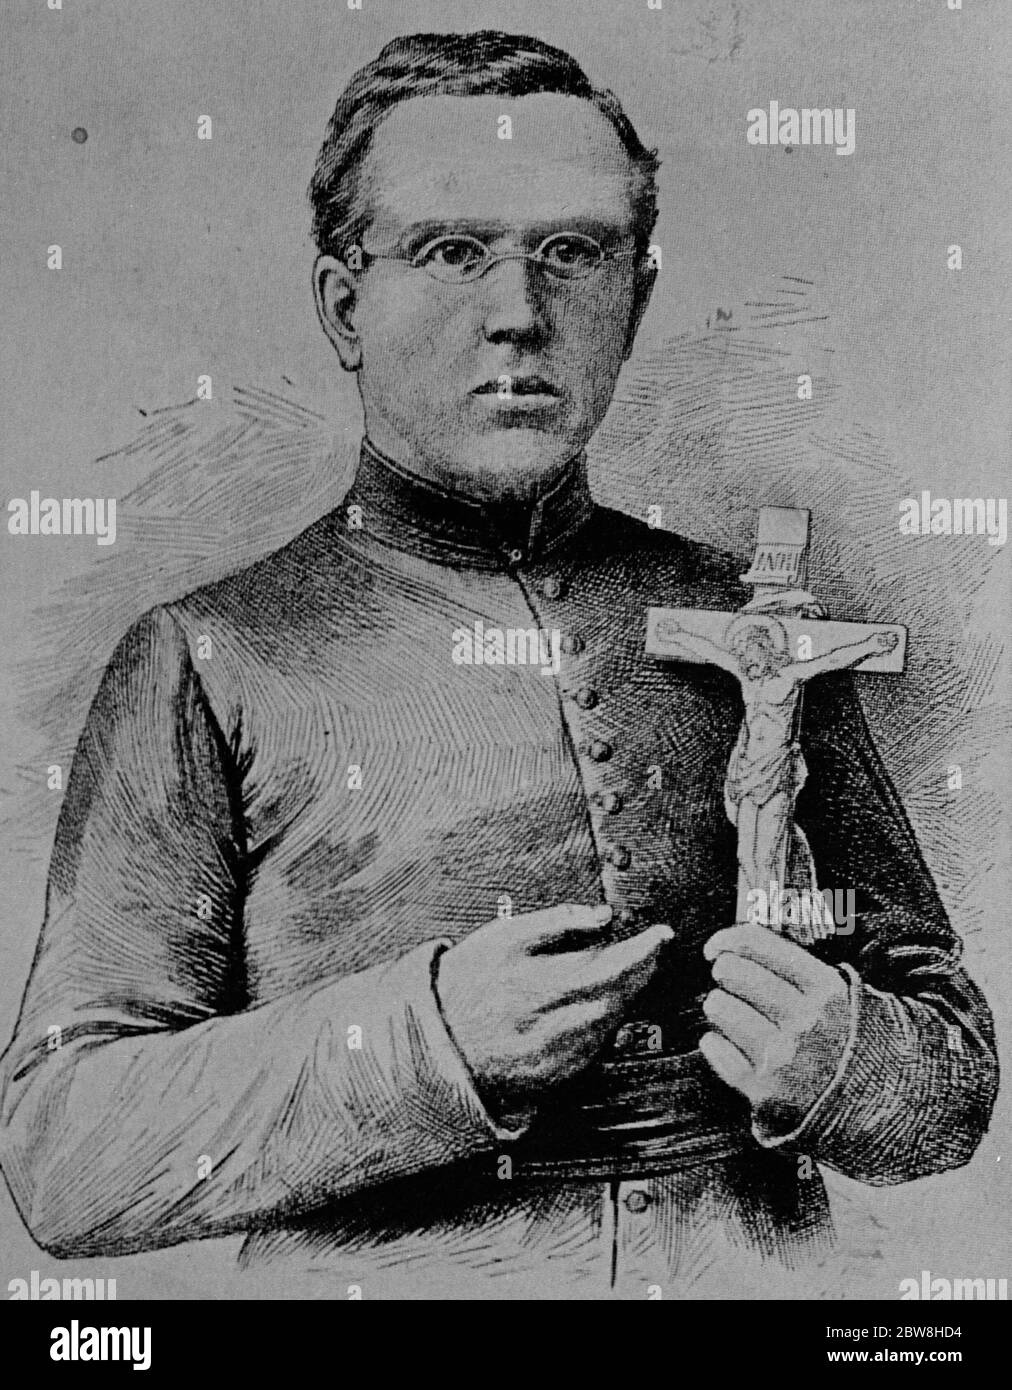 Gave his life for the lepers . Father Damien , the apostle of the lepers , of Molokai , who himself finally contracted and died of leprosy . 18 August 1932 Stock Photo